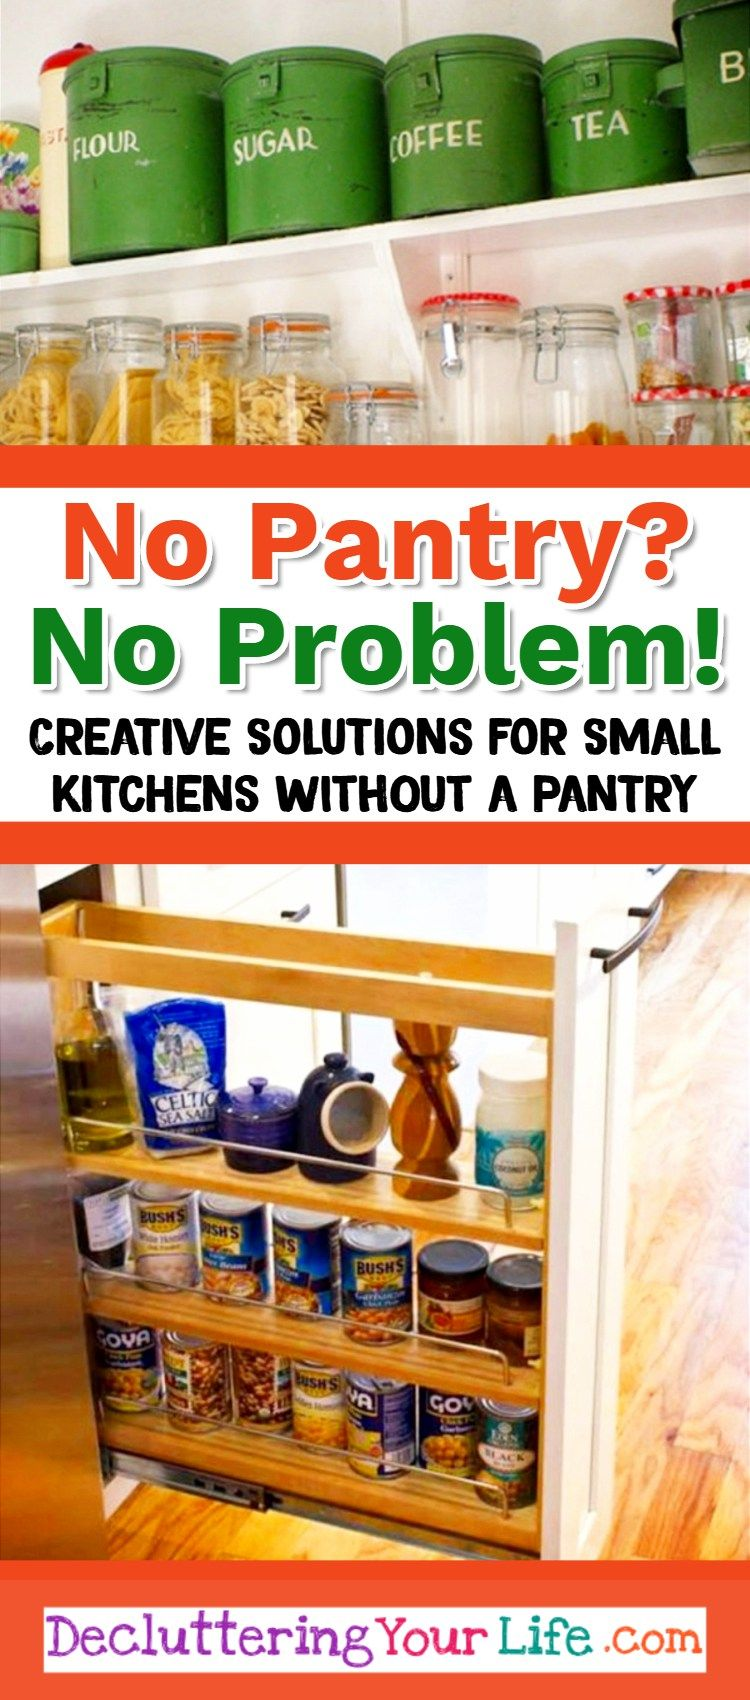 No Pantry solutions and small kitchen organization ideas and hacks for kitchens without a pantry #smallkitchenorganization #nopantry #nopantrysolutions #gettingorganized #storagesolutions #kitchenstorage #smallkitchens